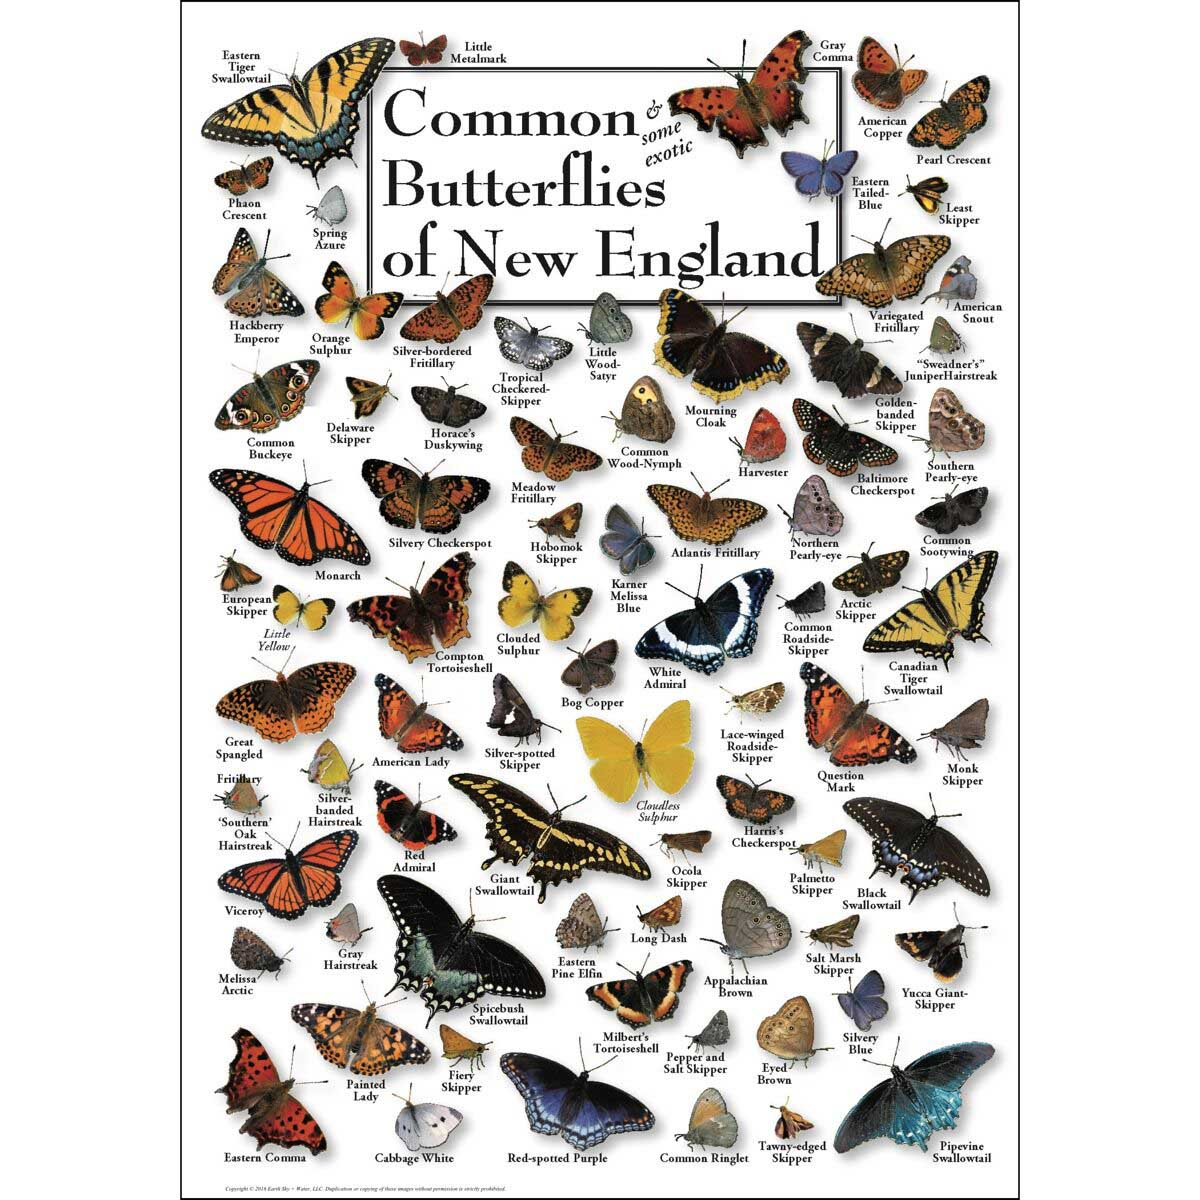 Butterlfies of New England Butterflies and Insects Jigsaw Puzzle